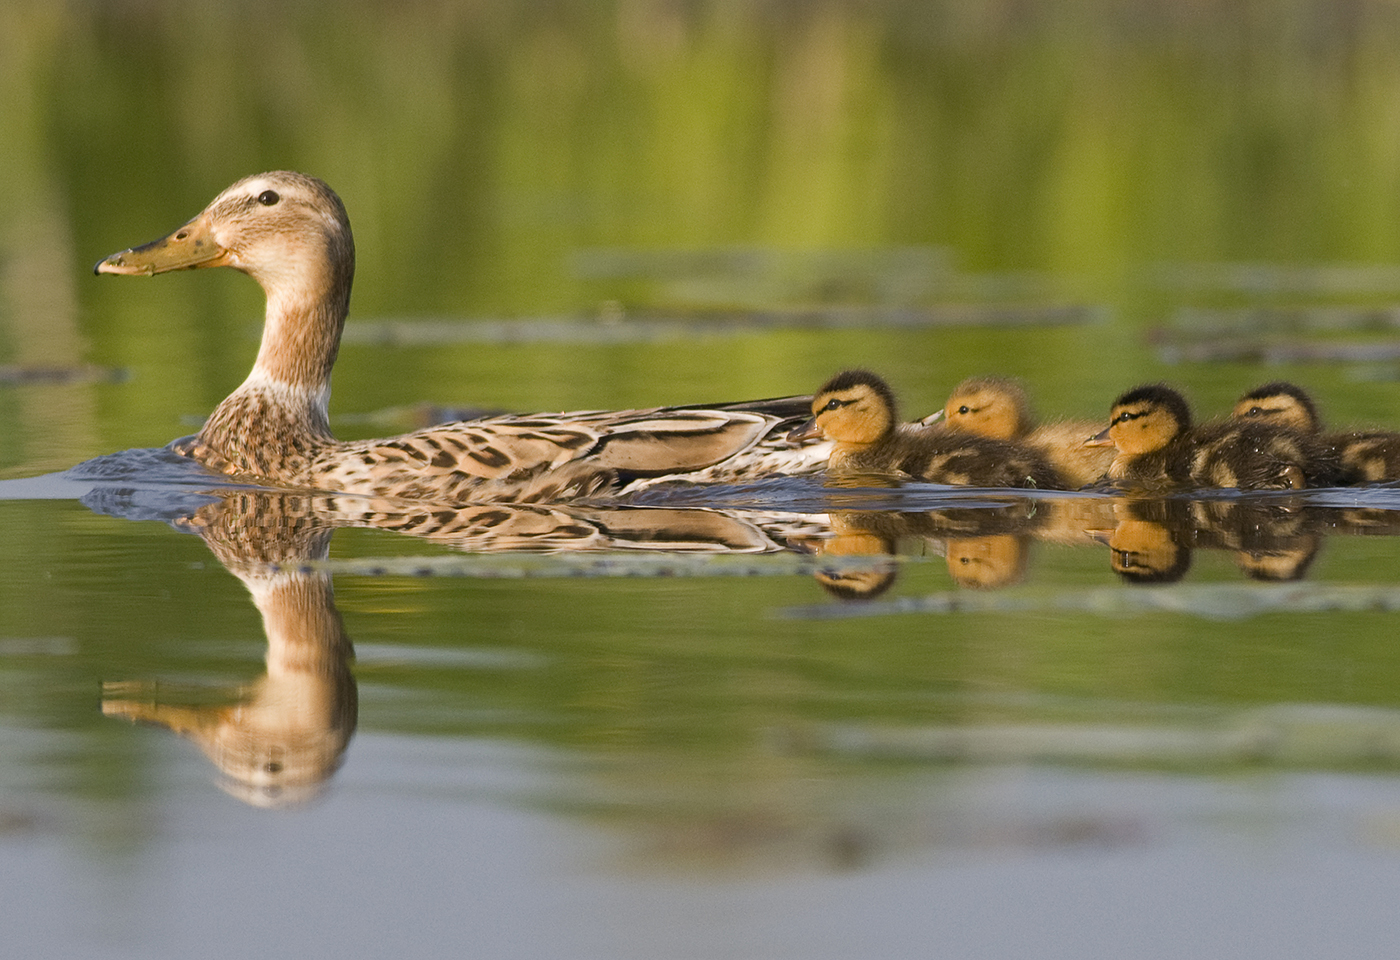 Mother duck swimming with ducklings following